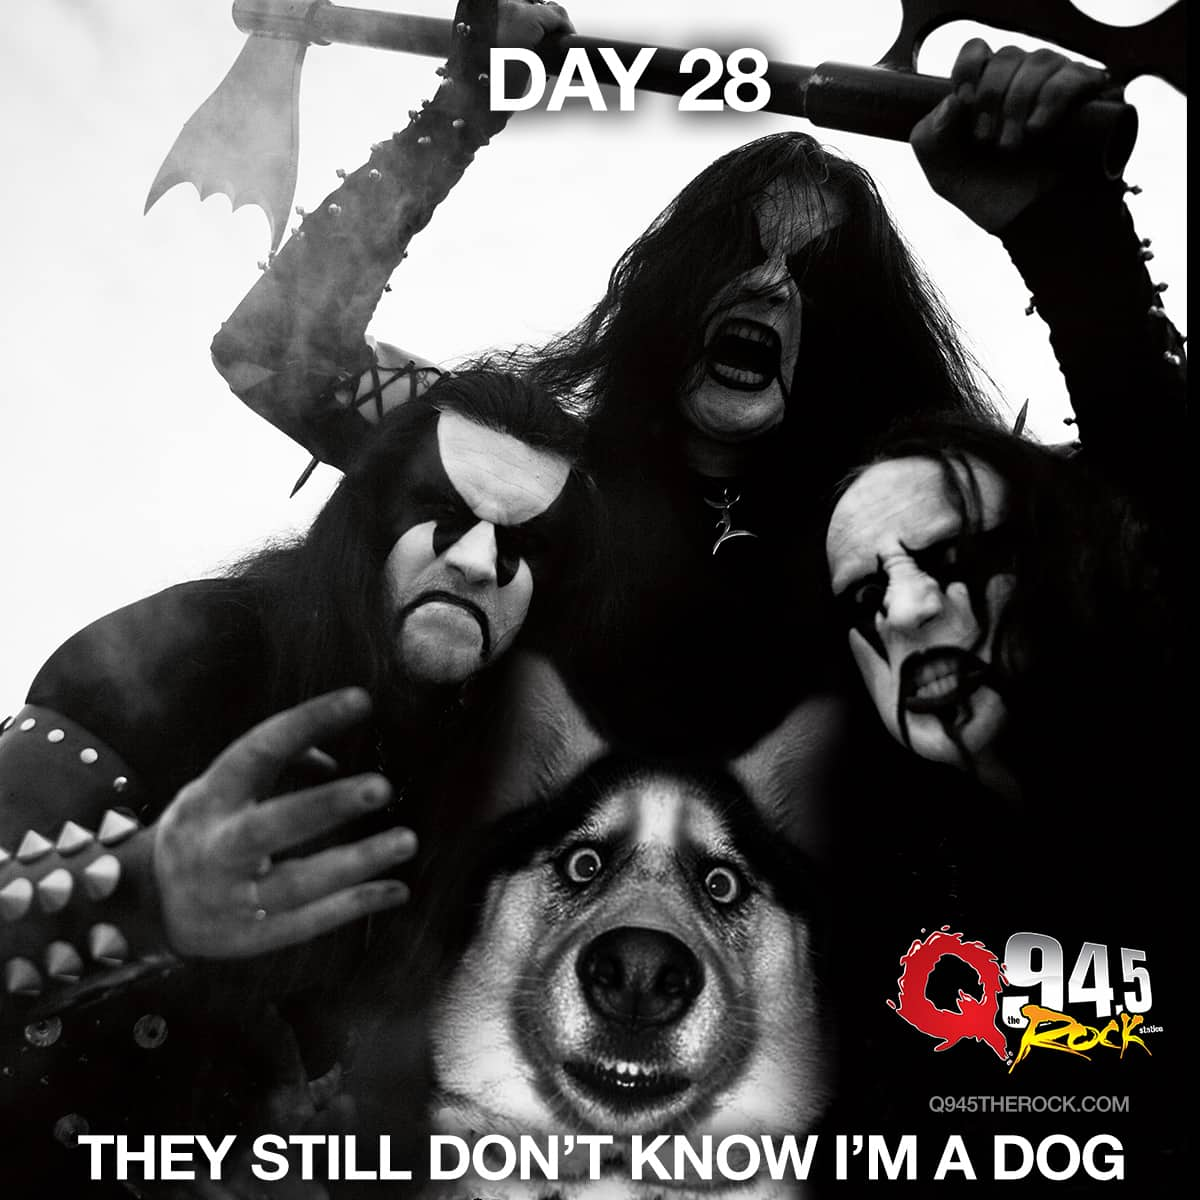 Day 28: They Still Don't Know I'm a Dog